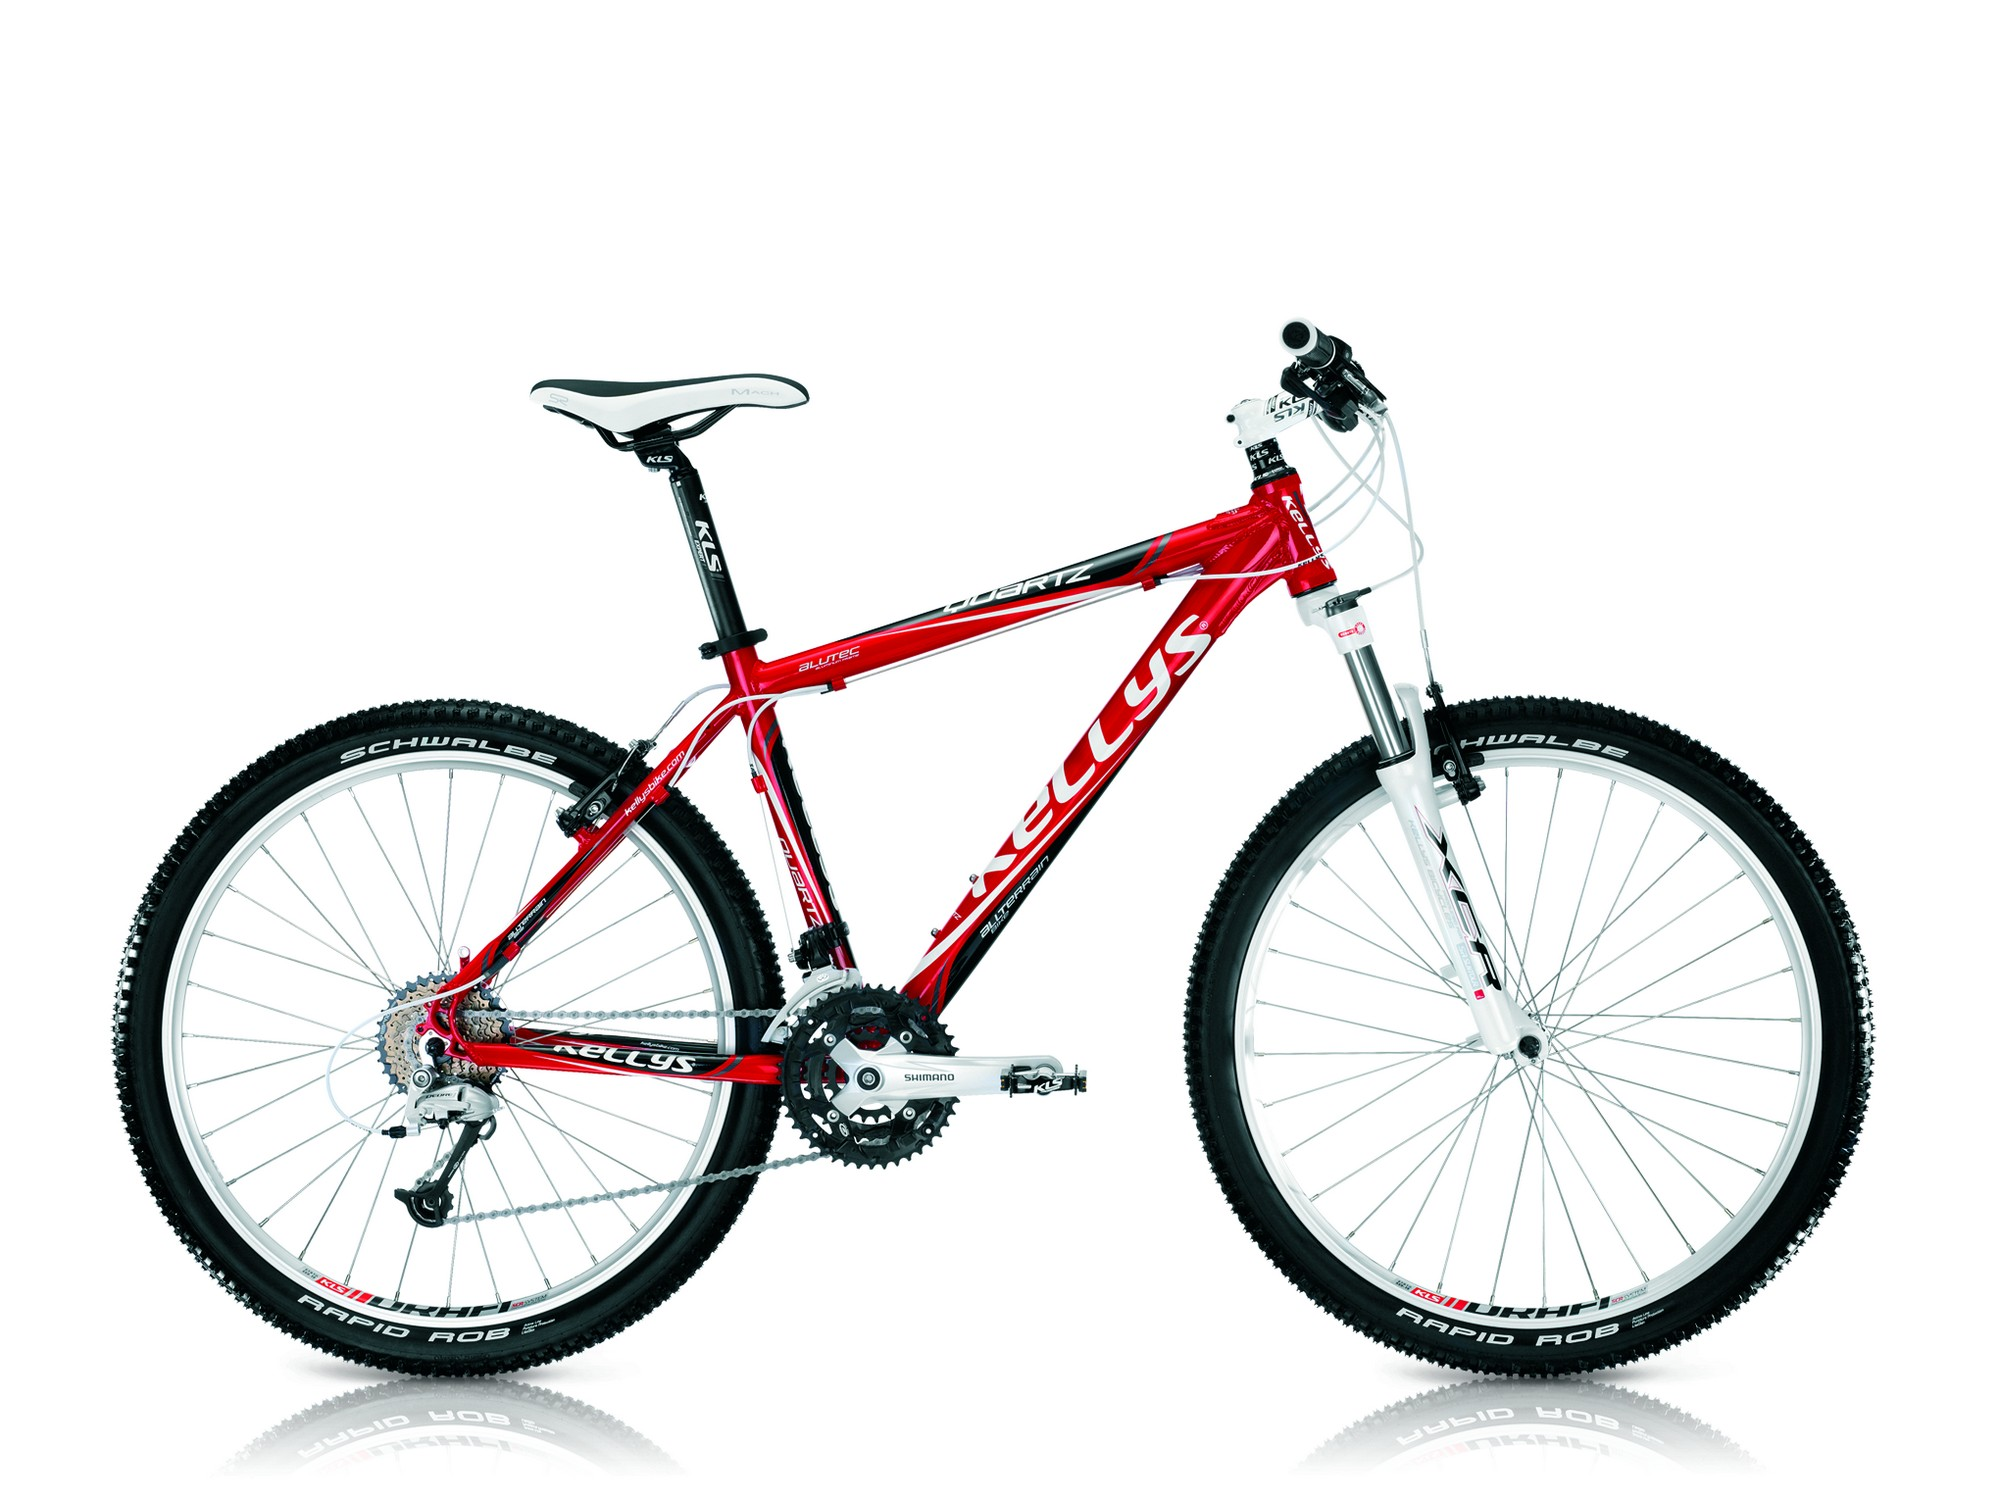 http://velosiped.com/product_images/2_2012Kellys_QUARTZ_RED.jpg2012Kellys_QUARTZ_RED.jpg